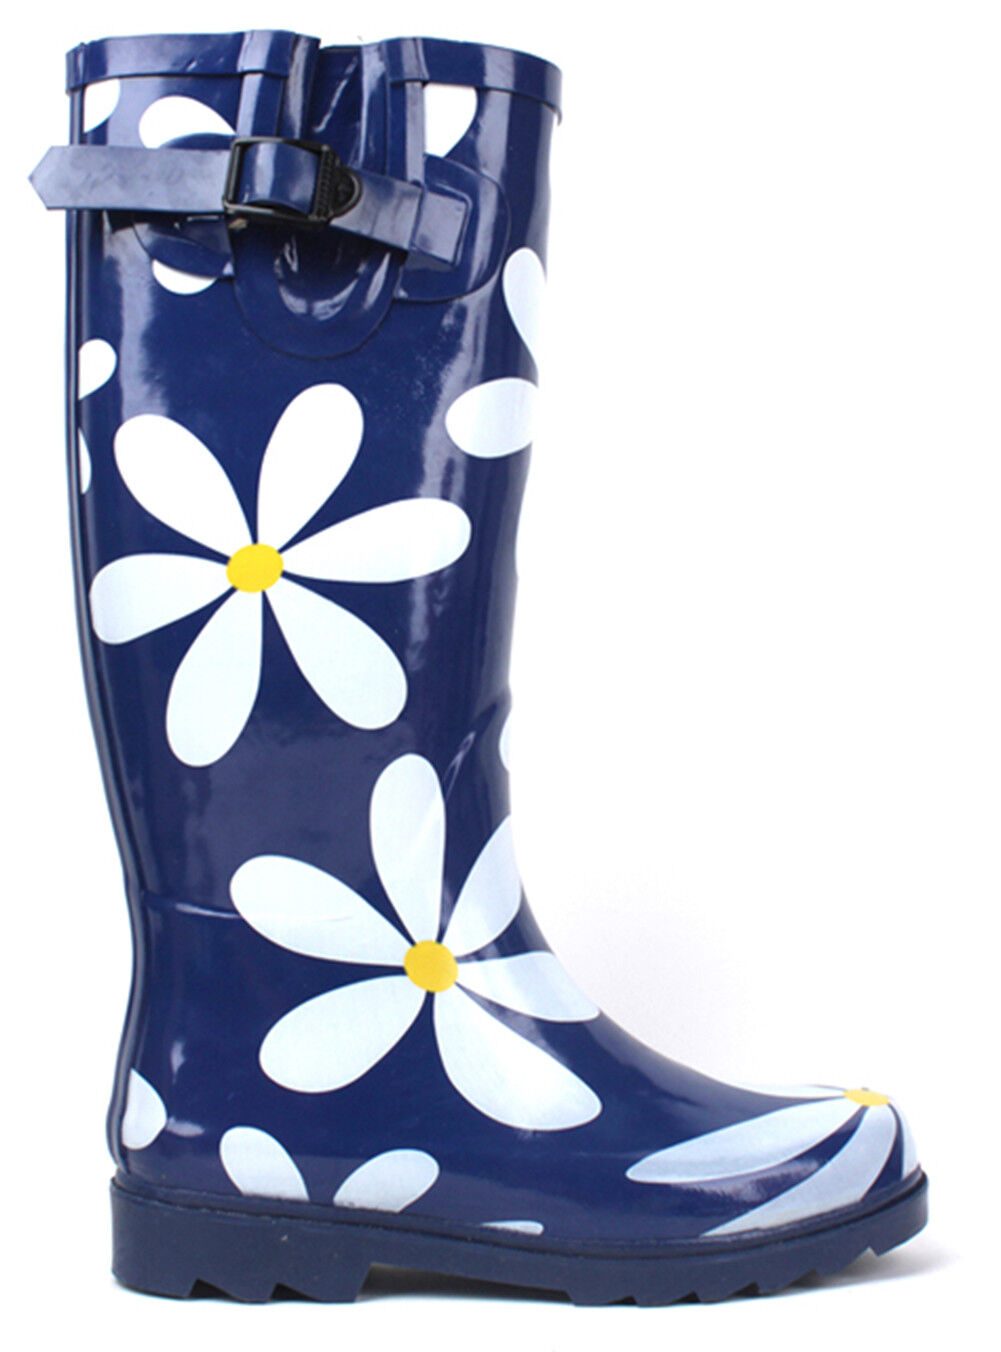 New Womens Flat Wellies\ Mid Calf Rubber Rain & Snow Boots Rain Boots,Size 5-11